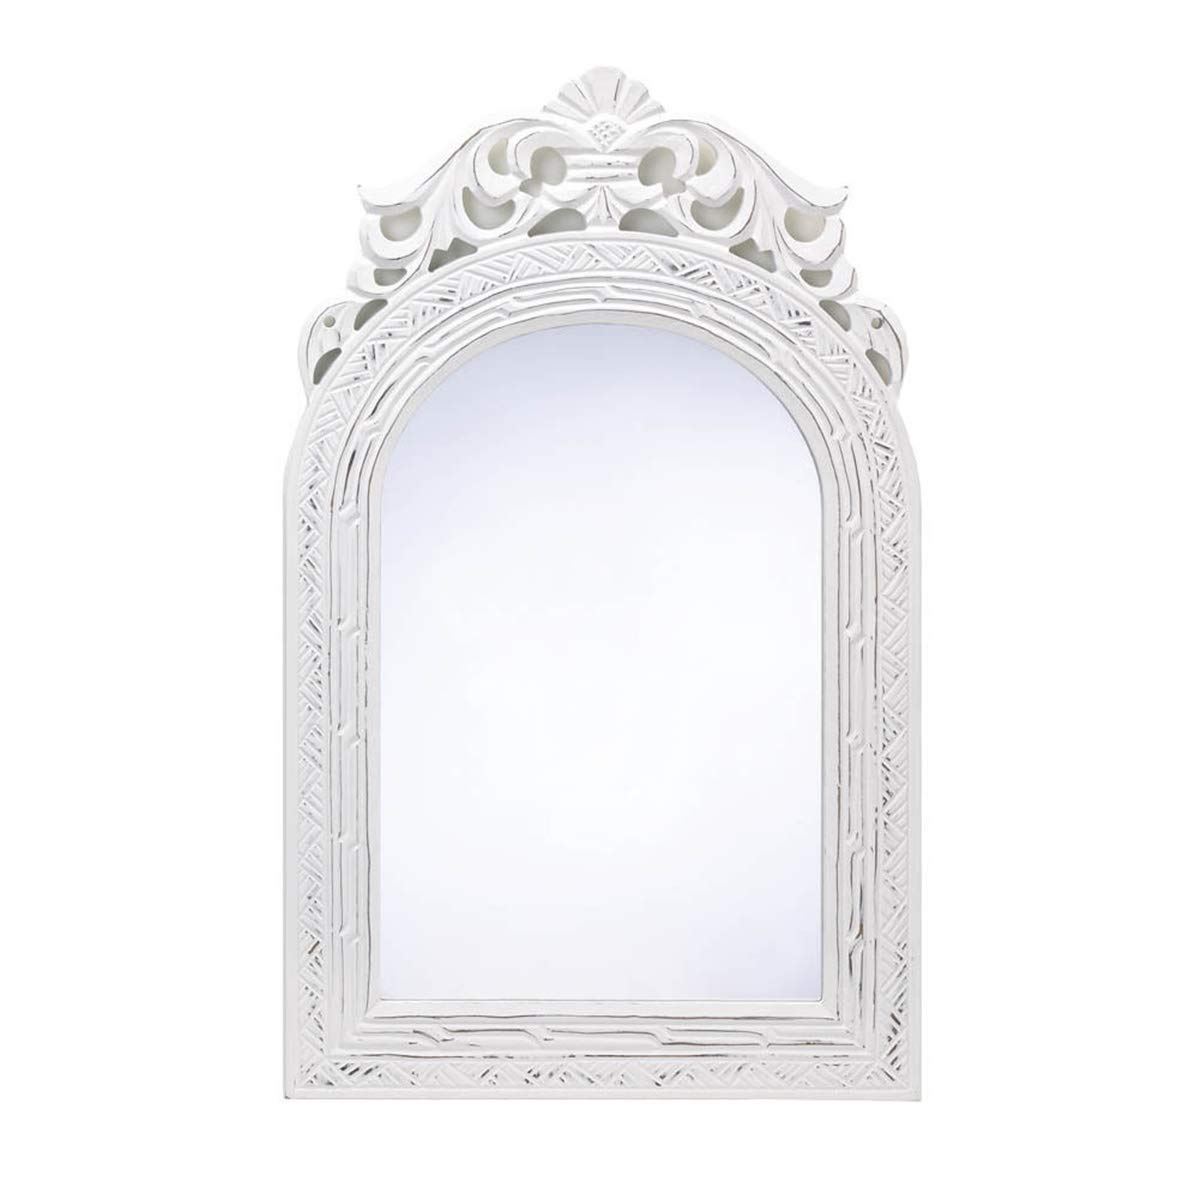 Osgarshop Wall Shabby Distressed Mirror White Wood Vintage Chic Arched Bathroom Entry Carved Cottage Weathered Farmhouse French Decor Style Panel Country